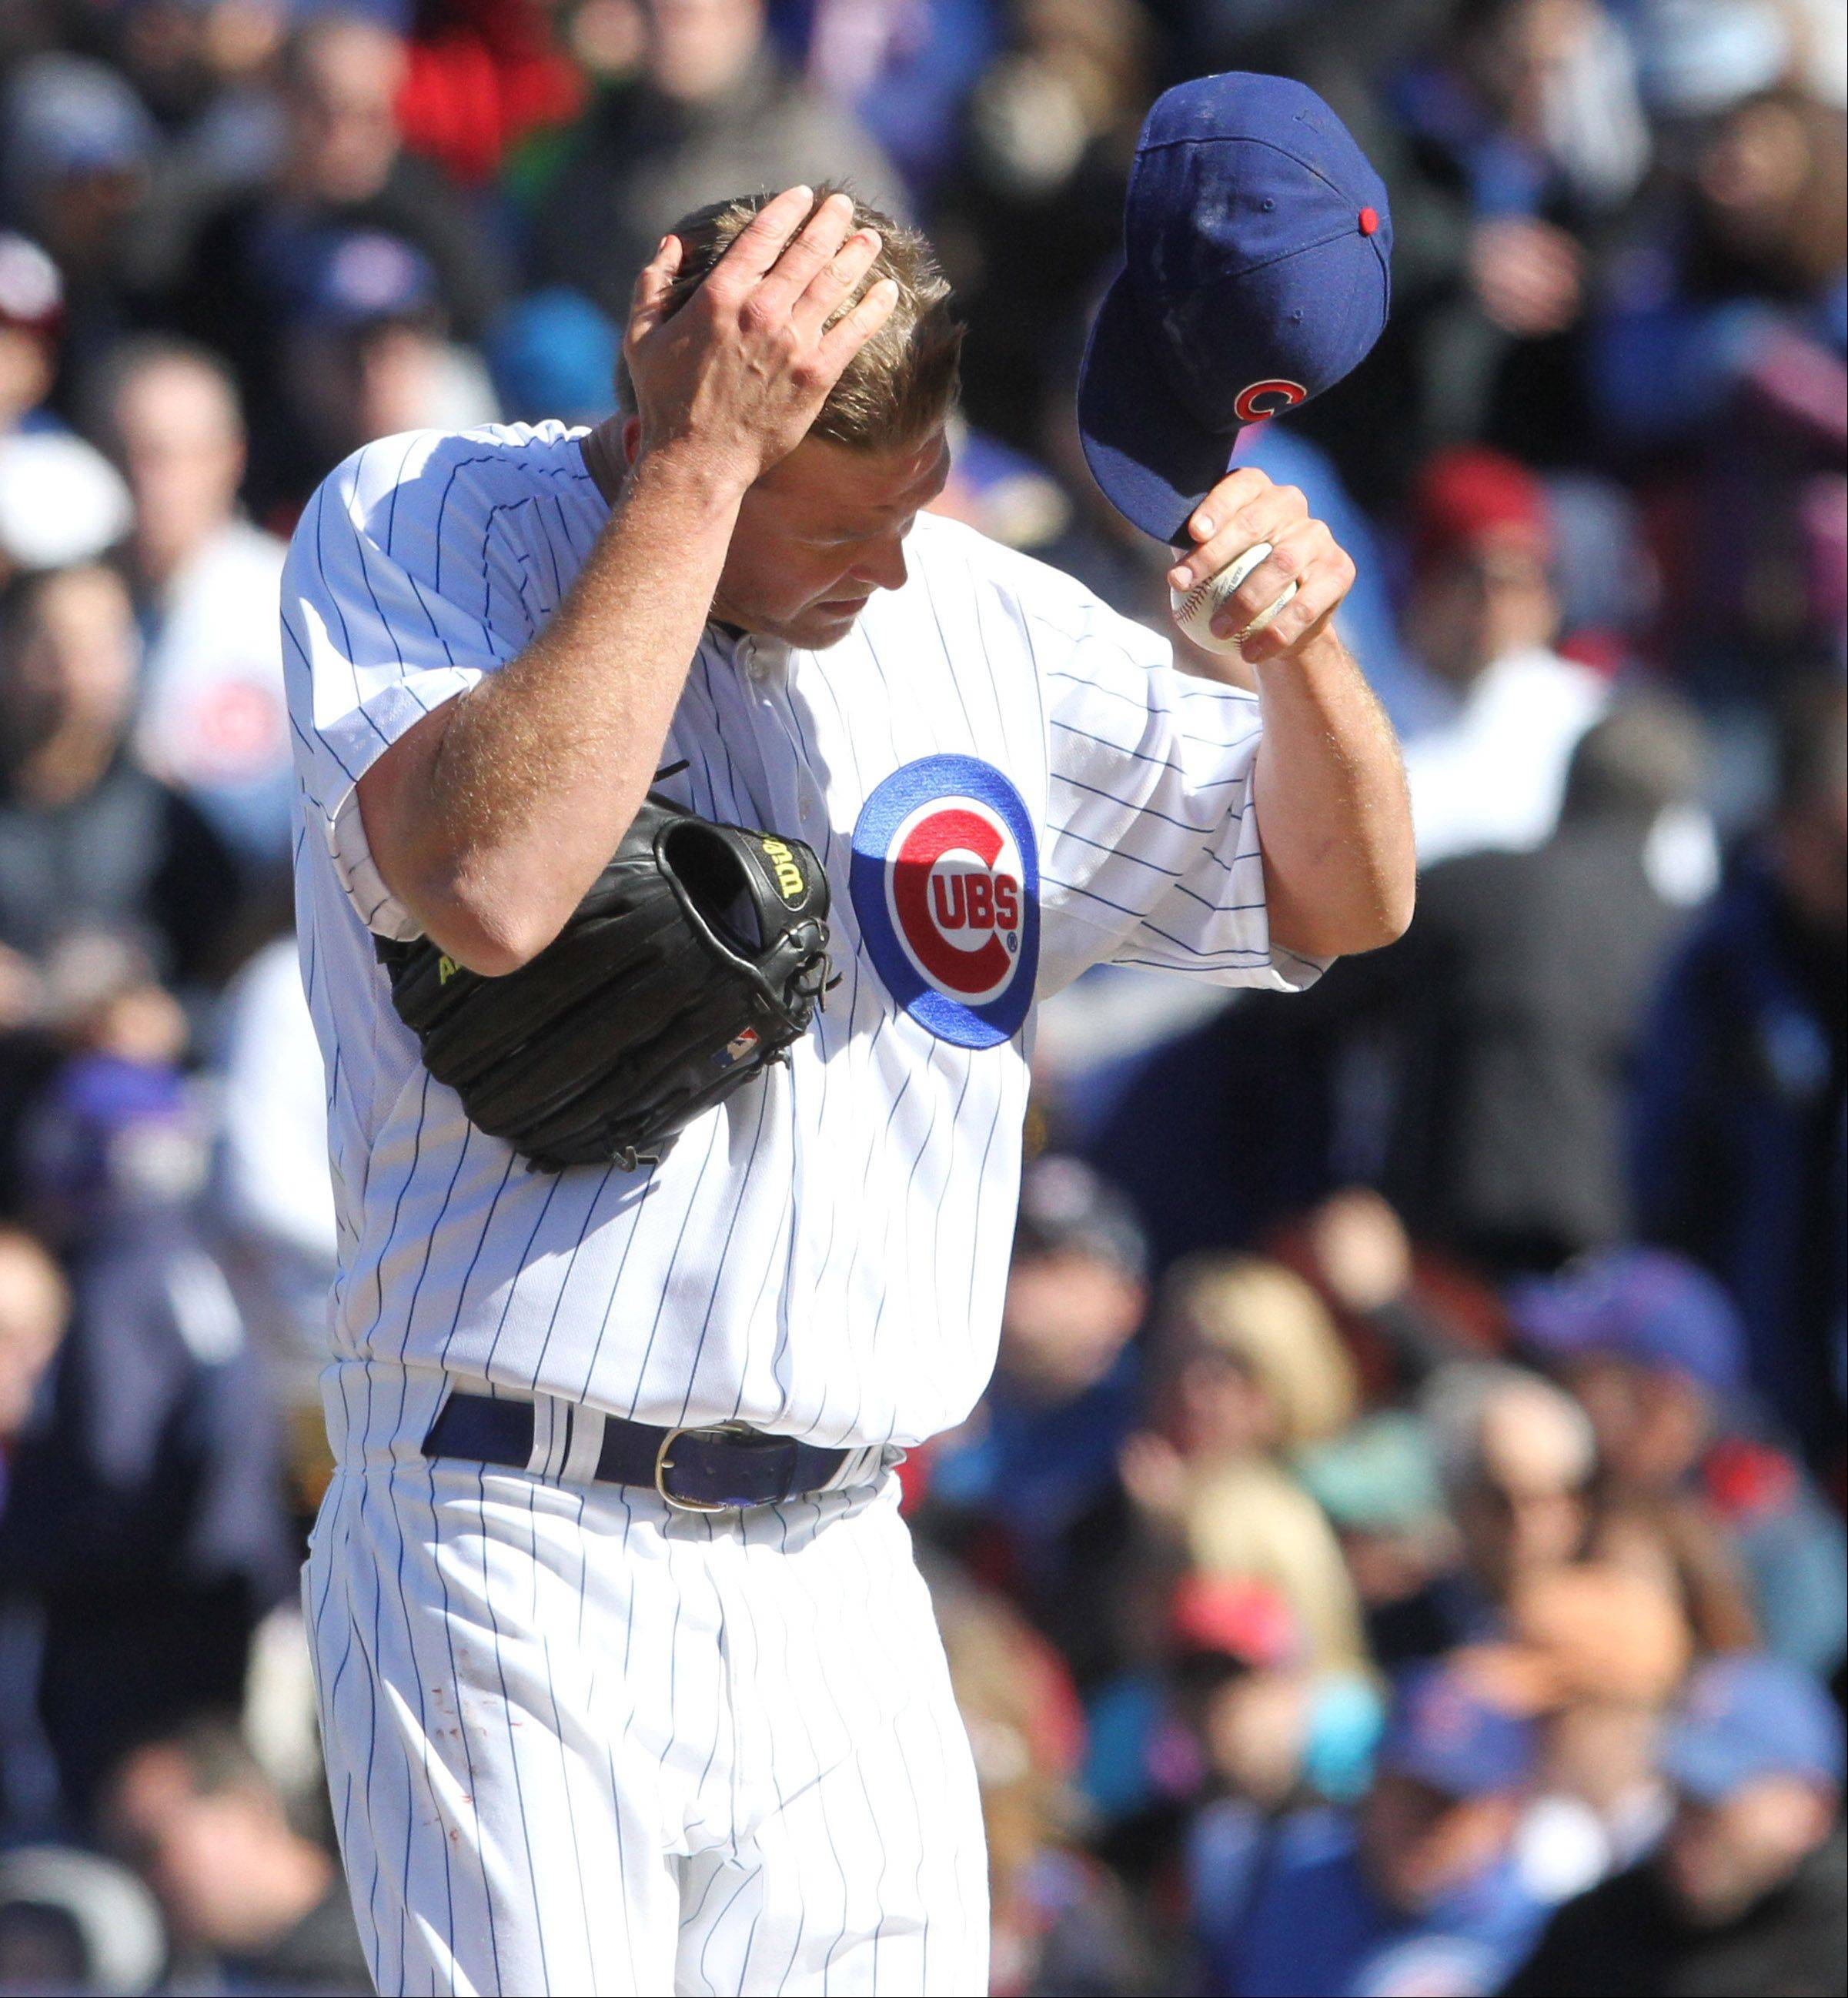 Cubs hope for Wood to return Friday